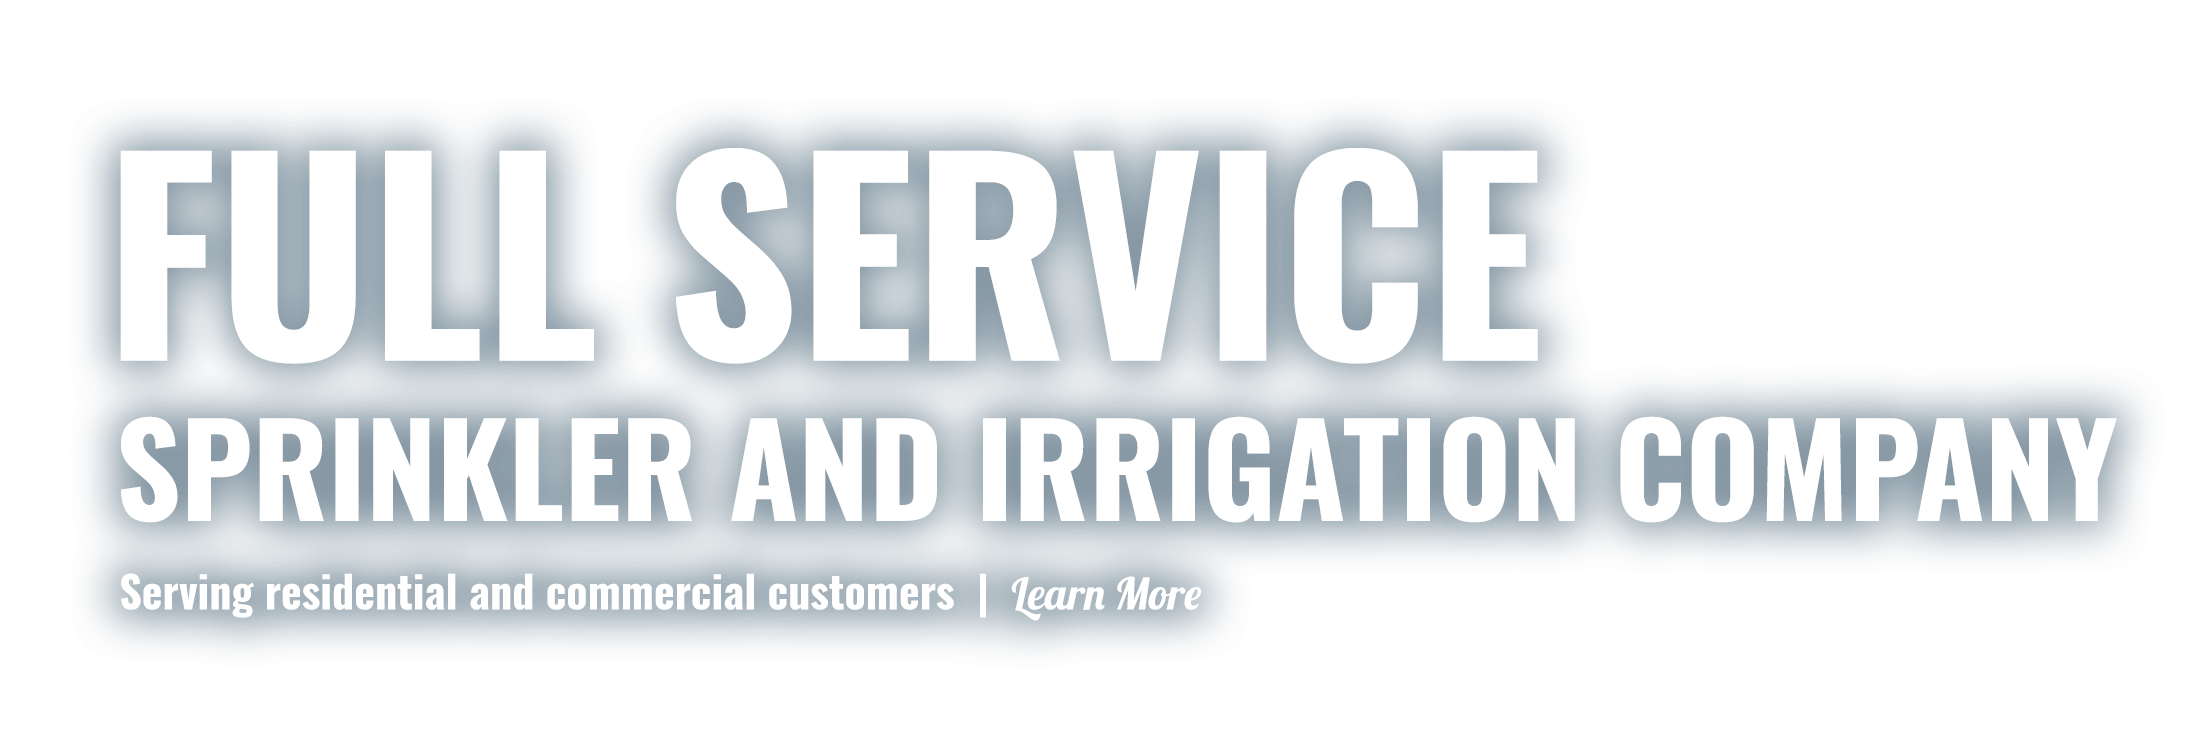 Full Service Sprinkler and Irrigation Company